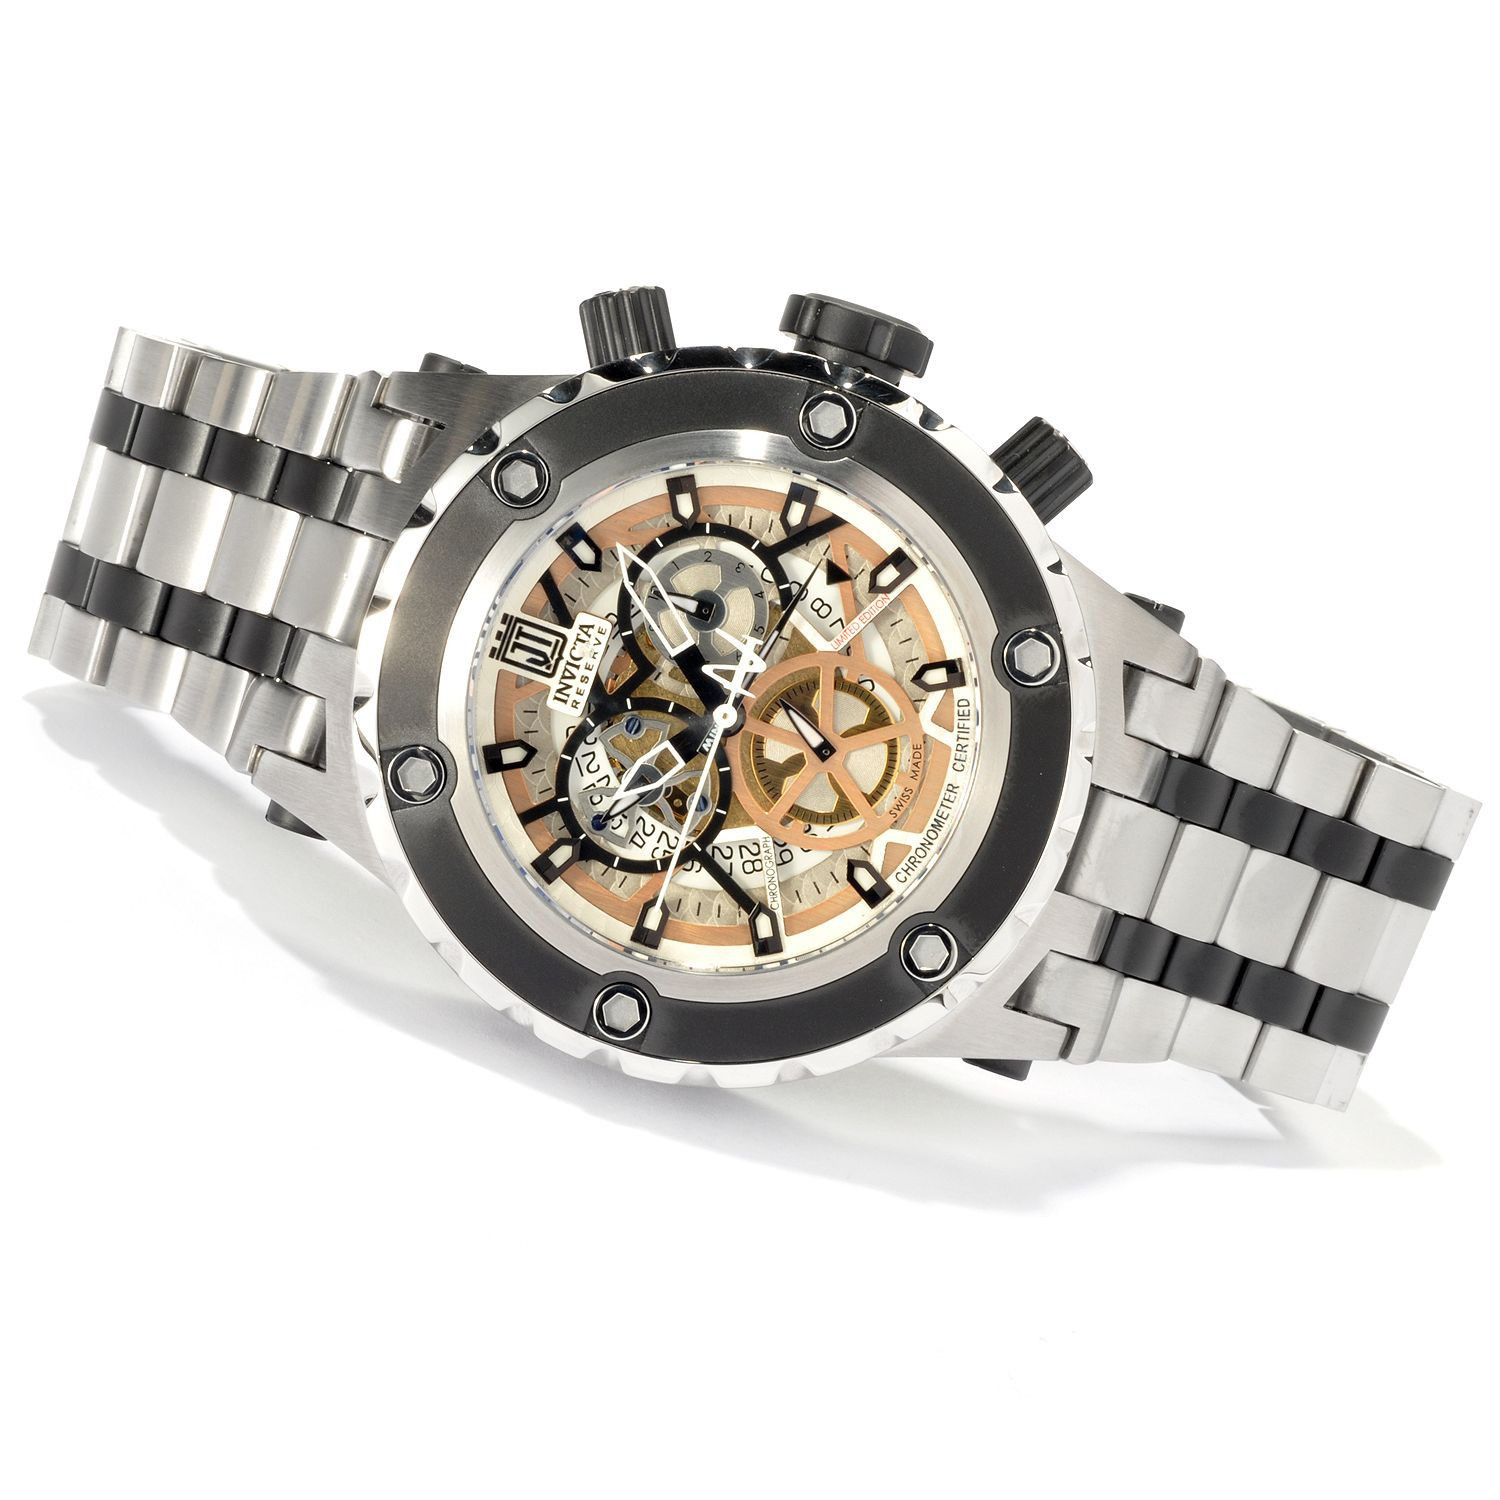 Invicta 12958 COSC Limited Edition